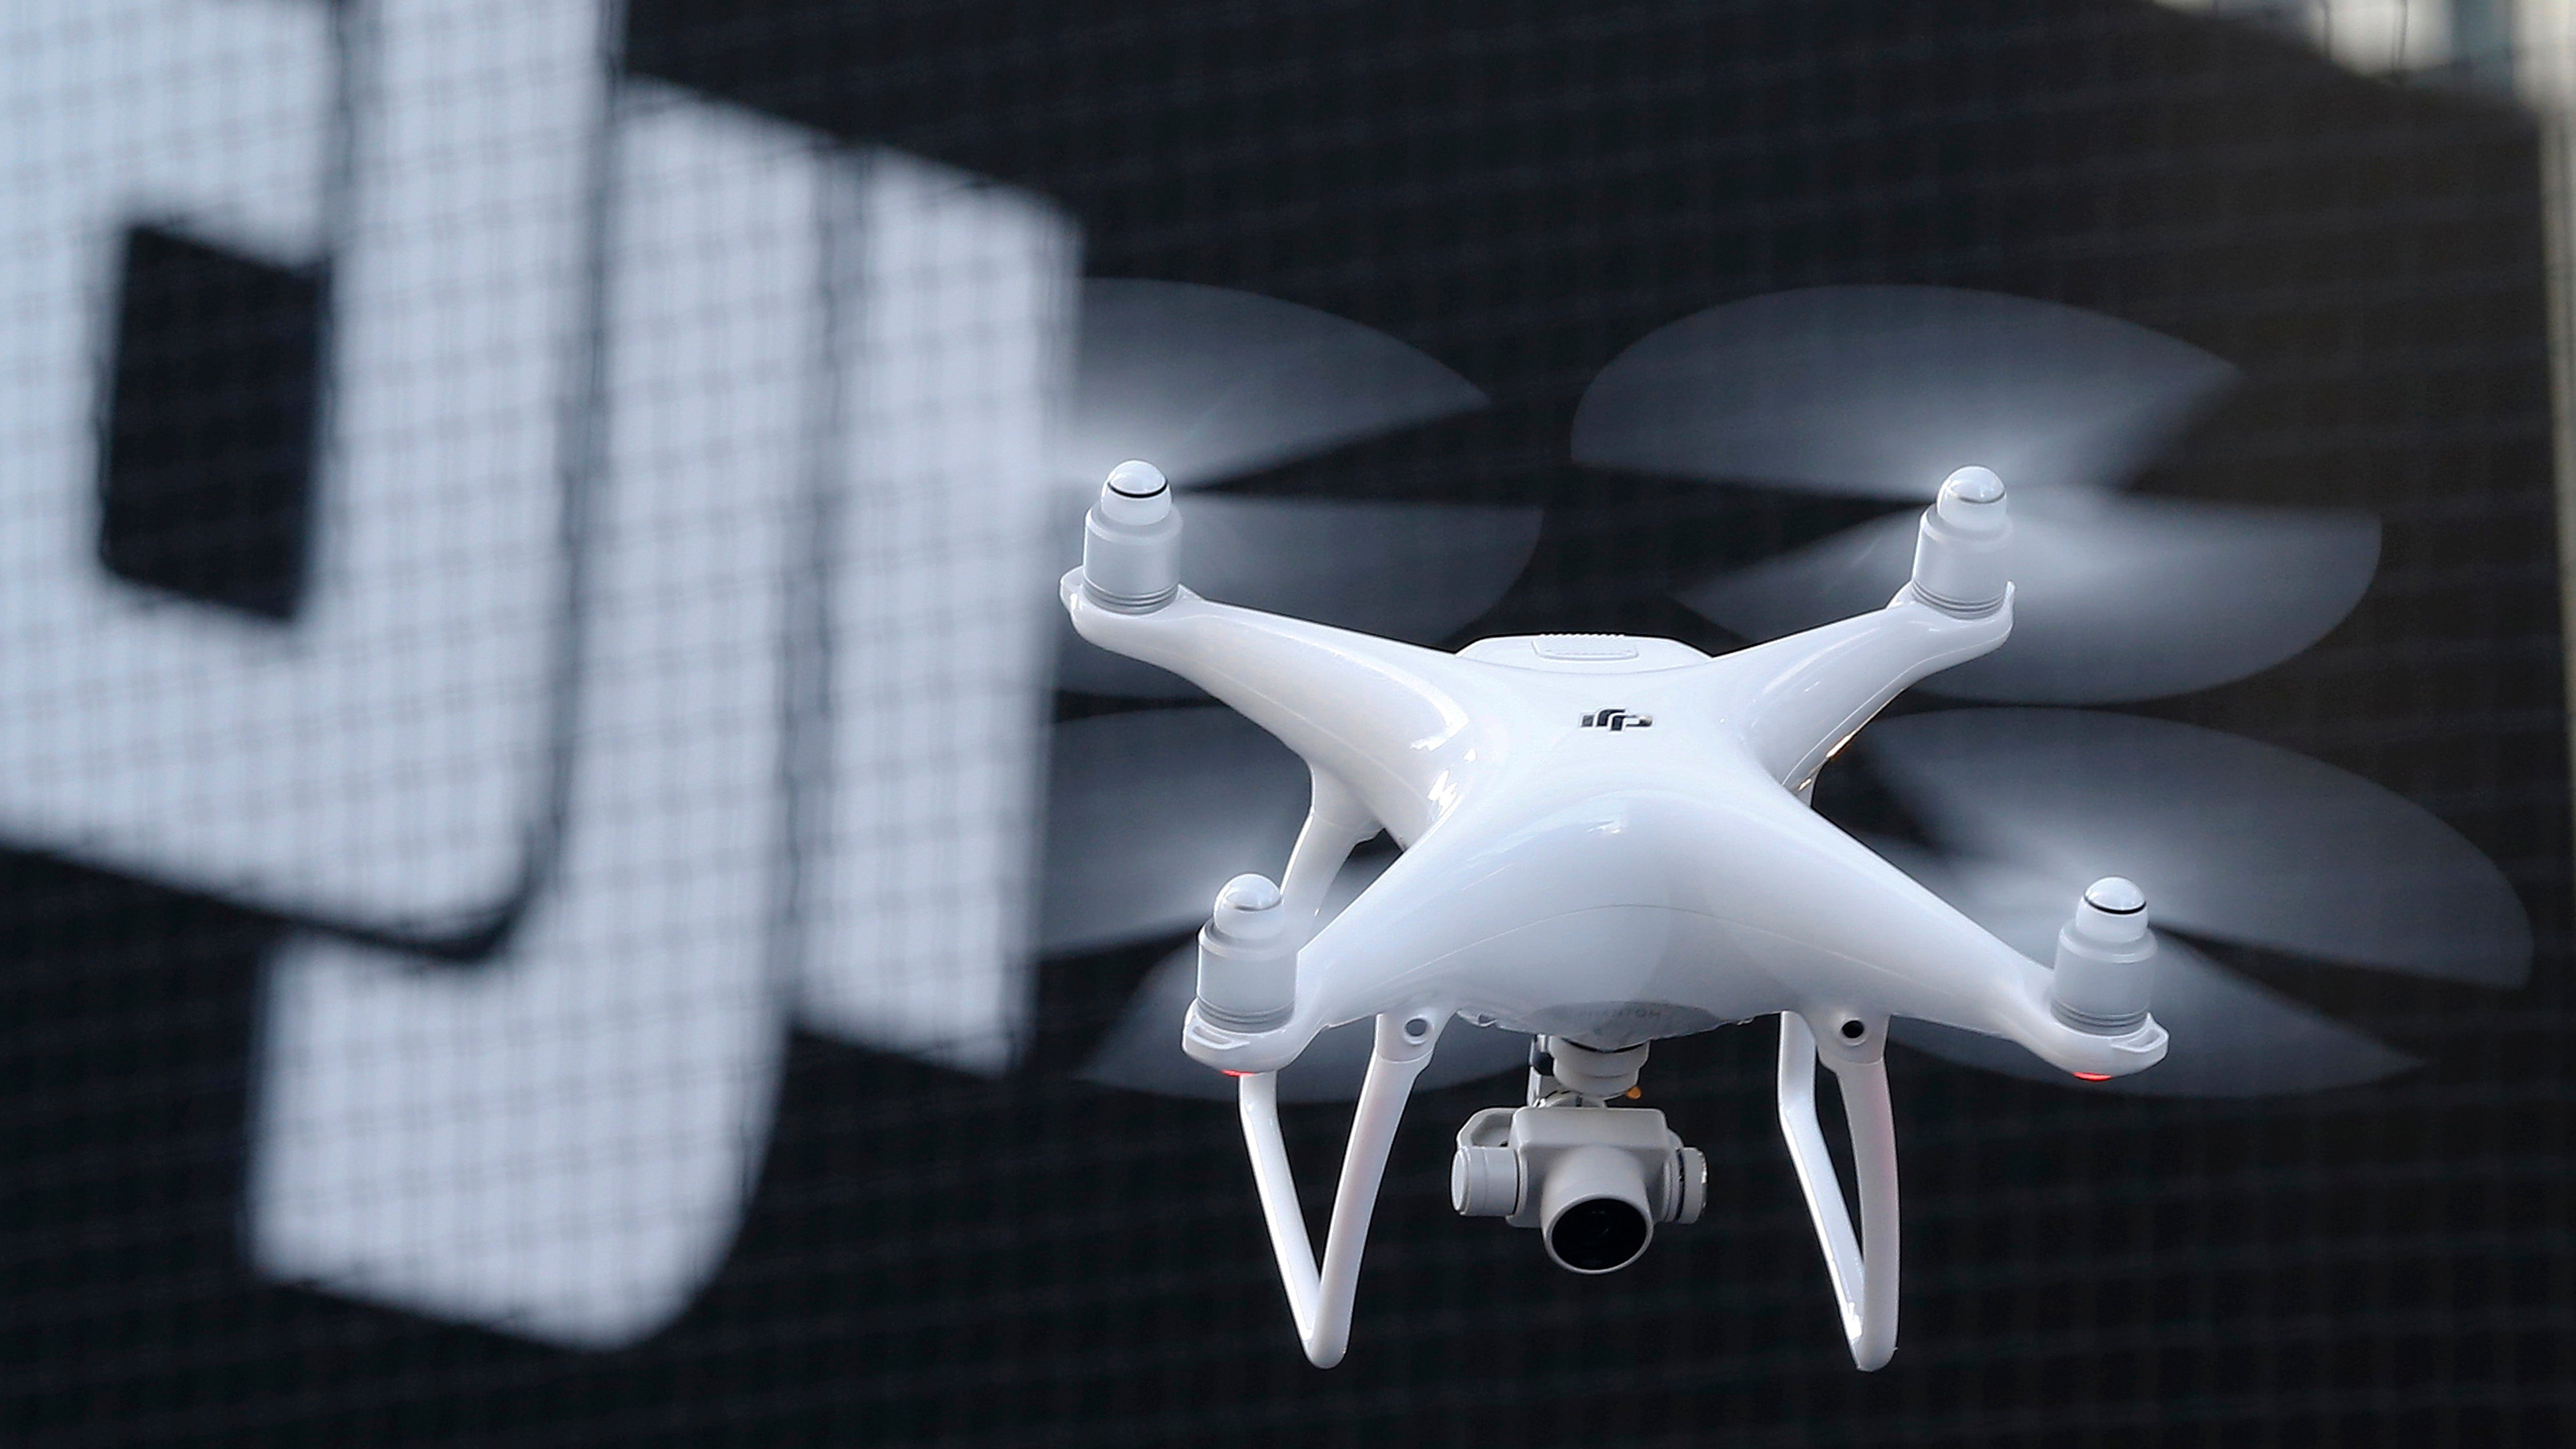 DJI Releases Security Findings It Hopes Will Quash 'Chinese Spying' Fears